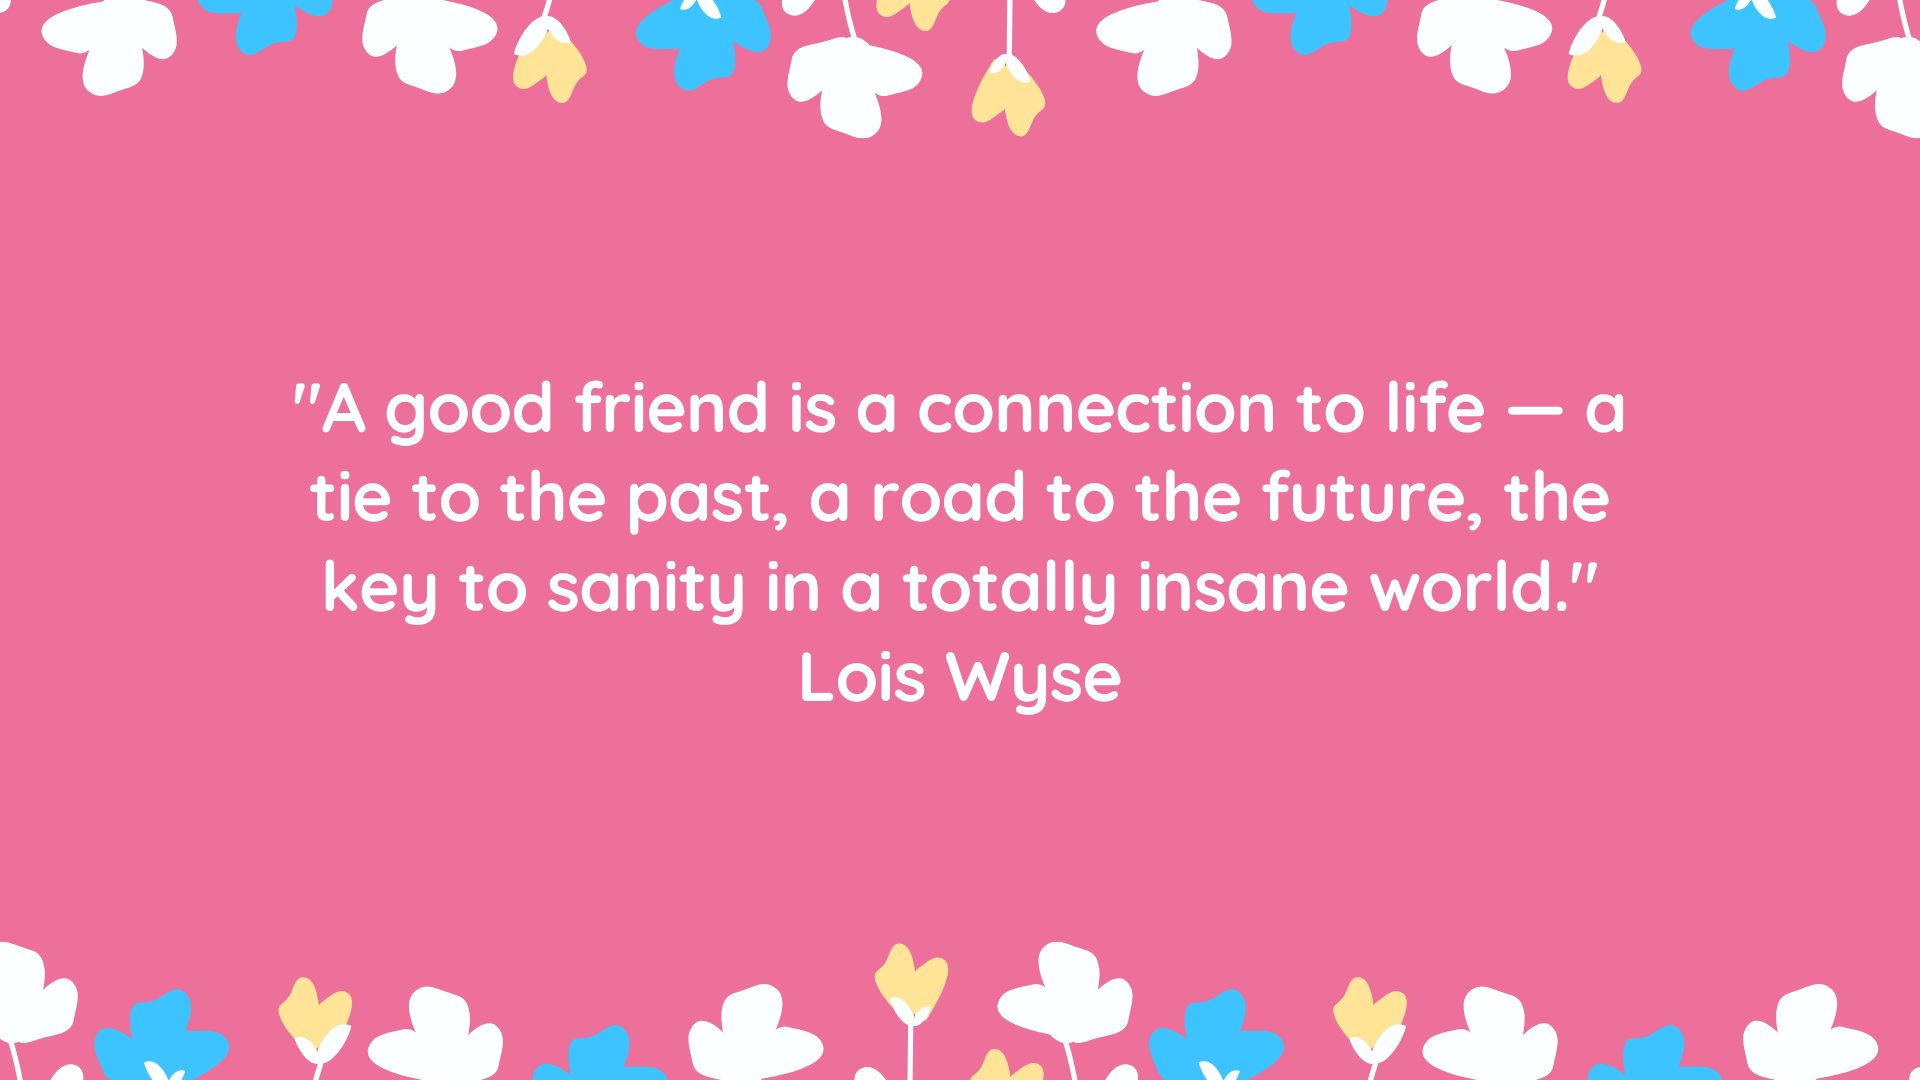 """""""A good friend is a connection to life — a tie to the past, a road to the future, the key to sanity in a totally insane world."""" Lois Wyse"""